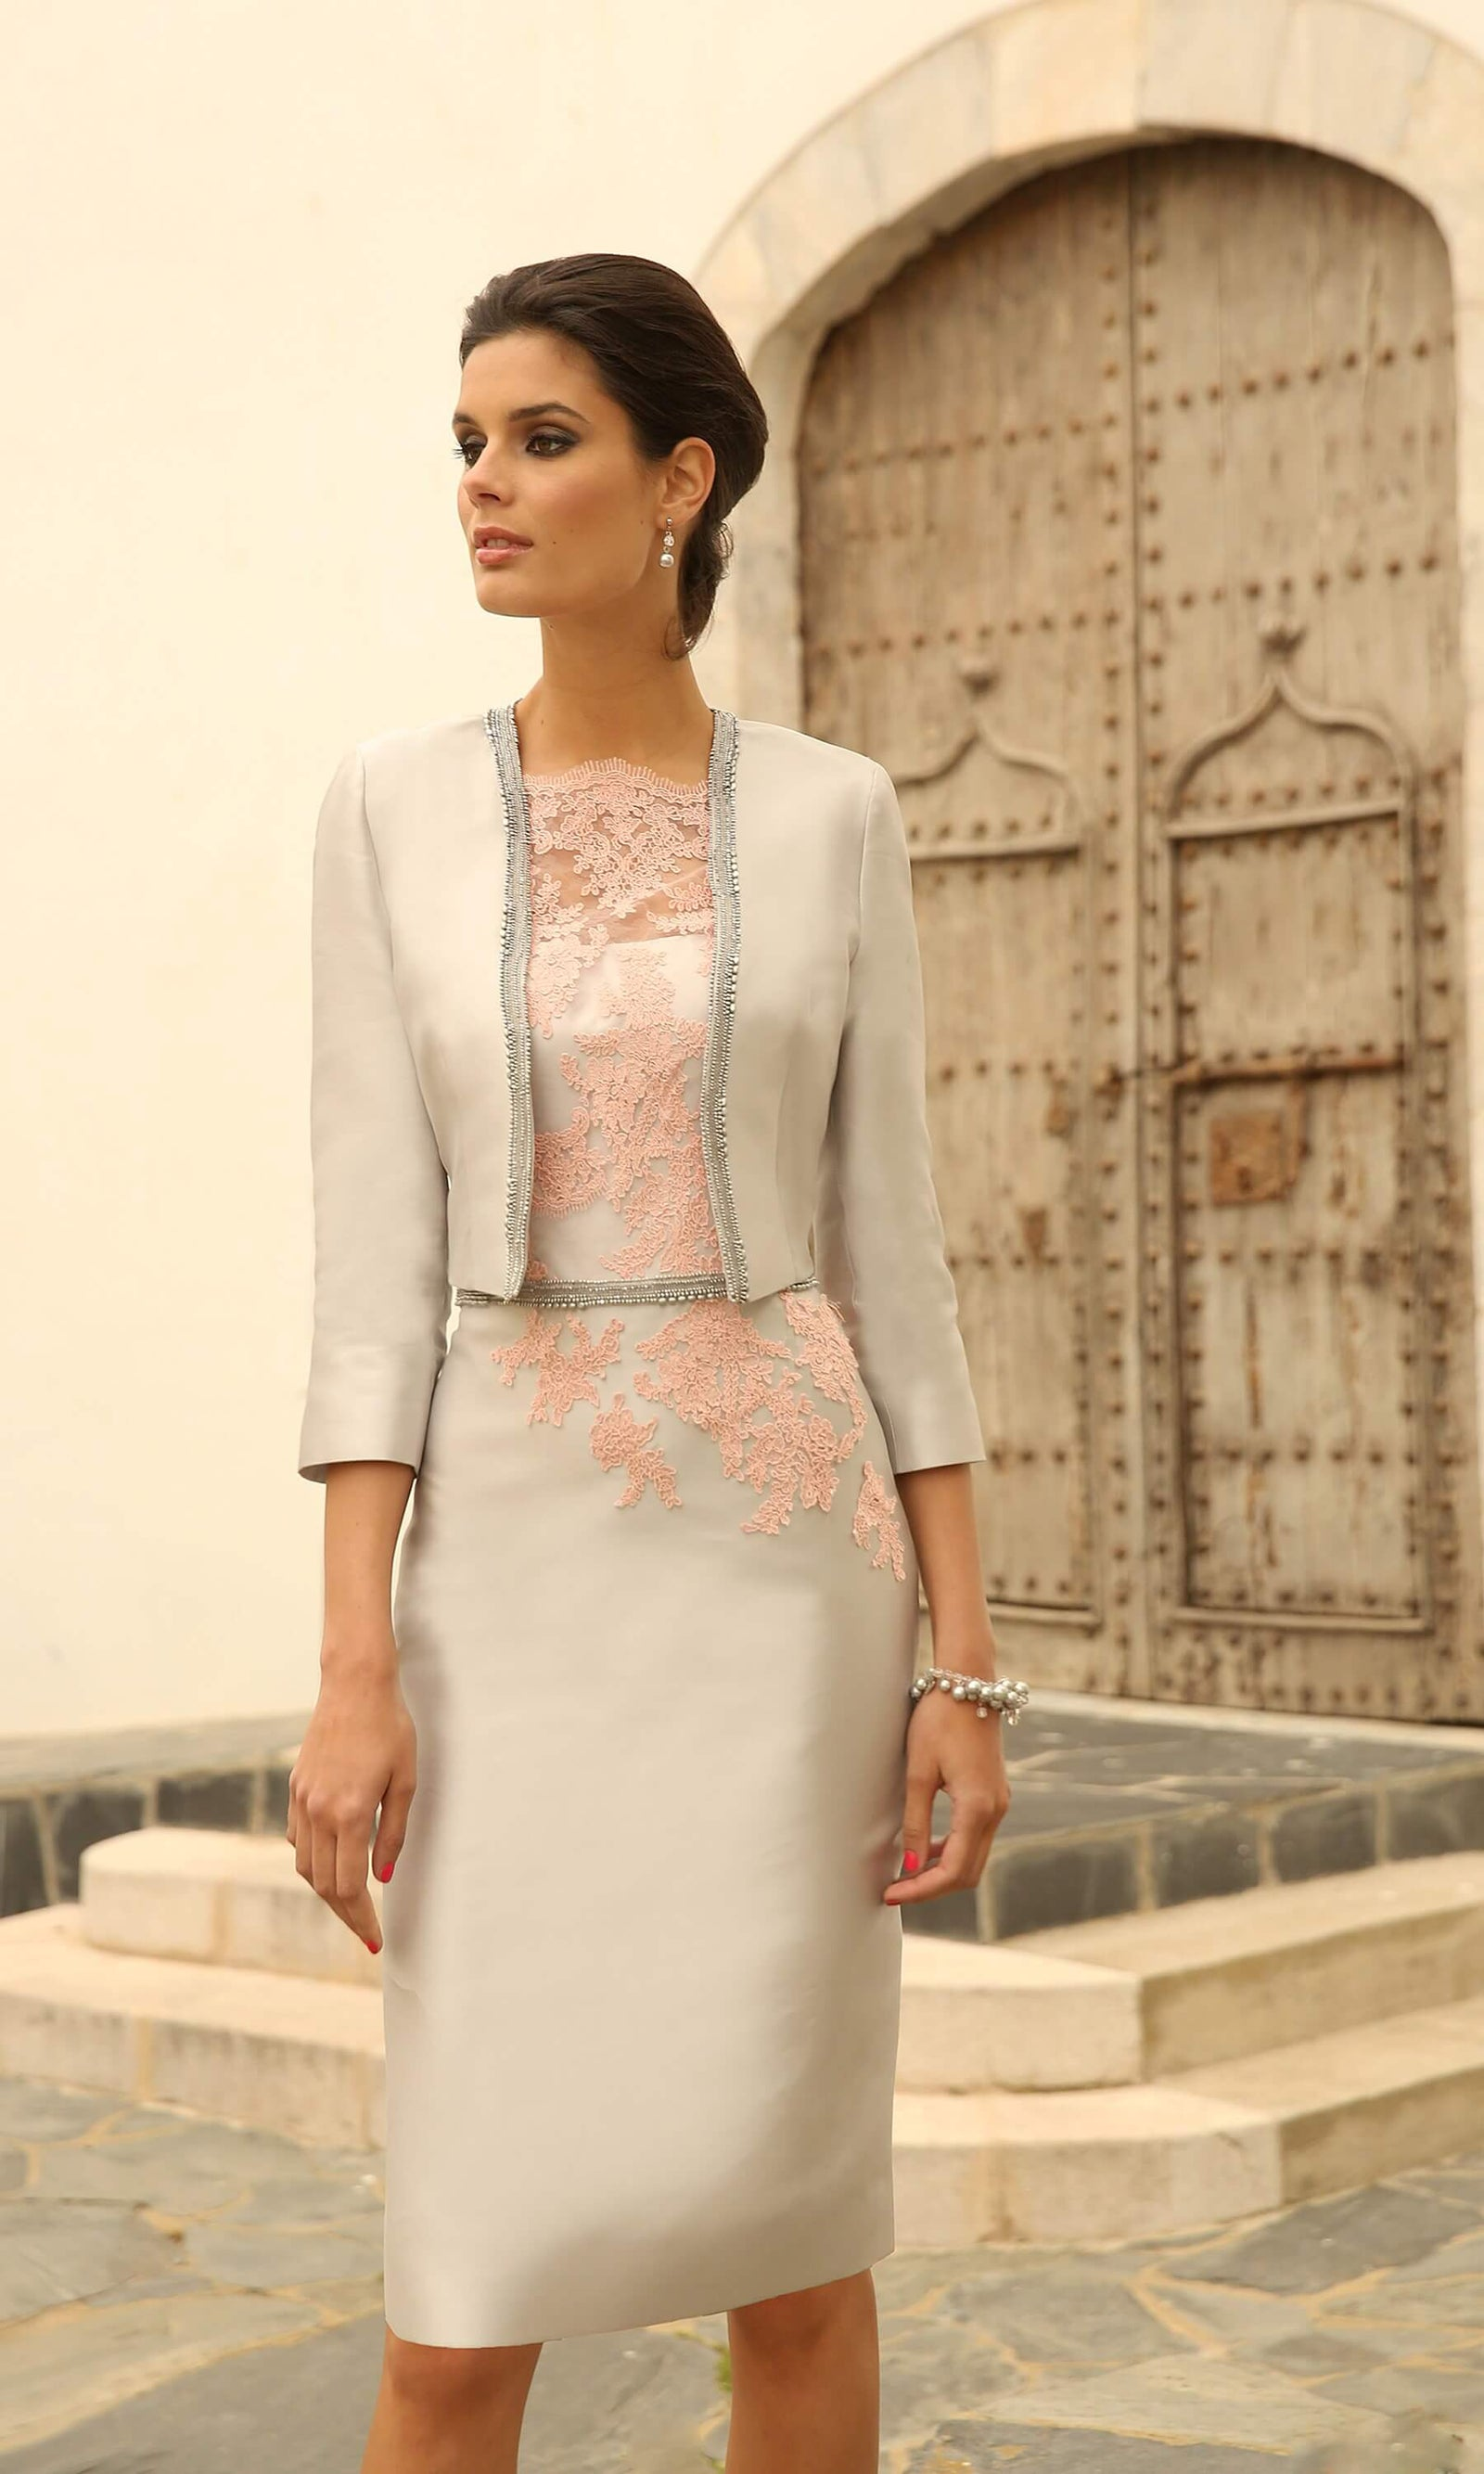 Set 264 Flamingo Silver Linea Raffaelli Dress & Bolero